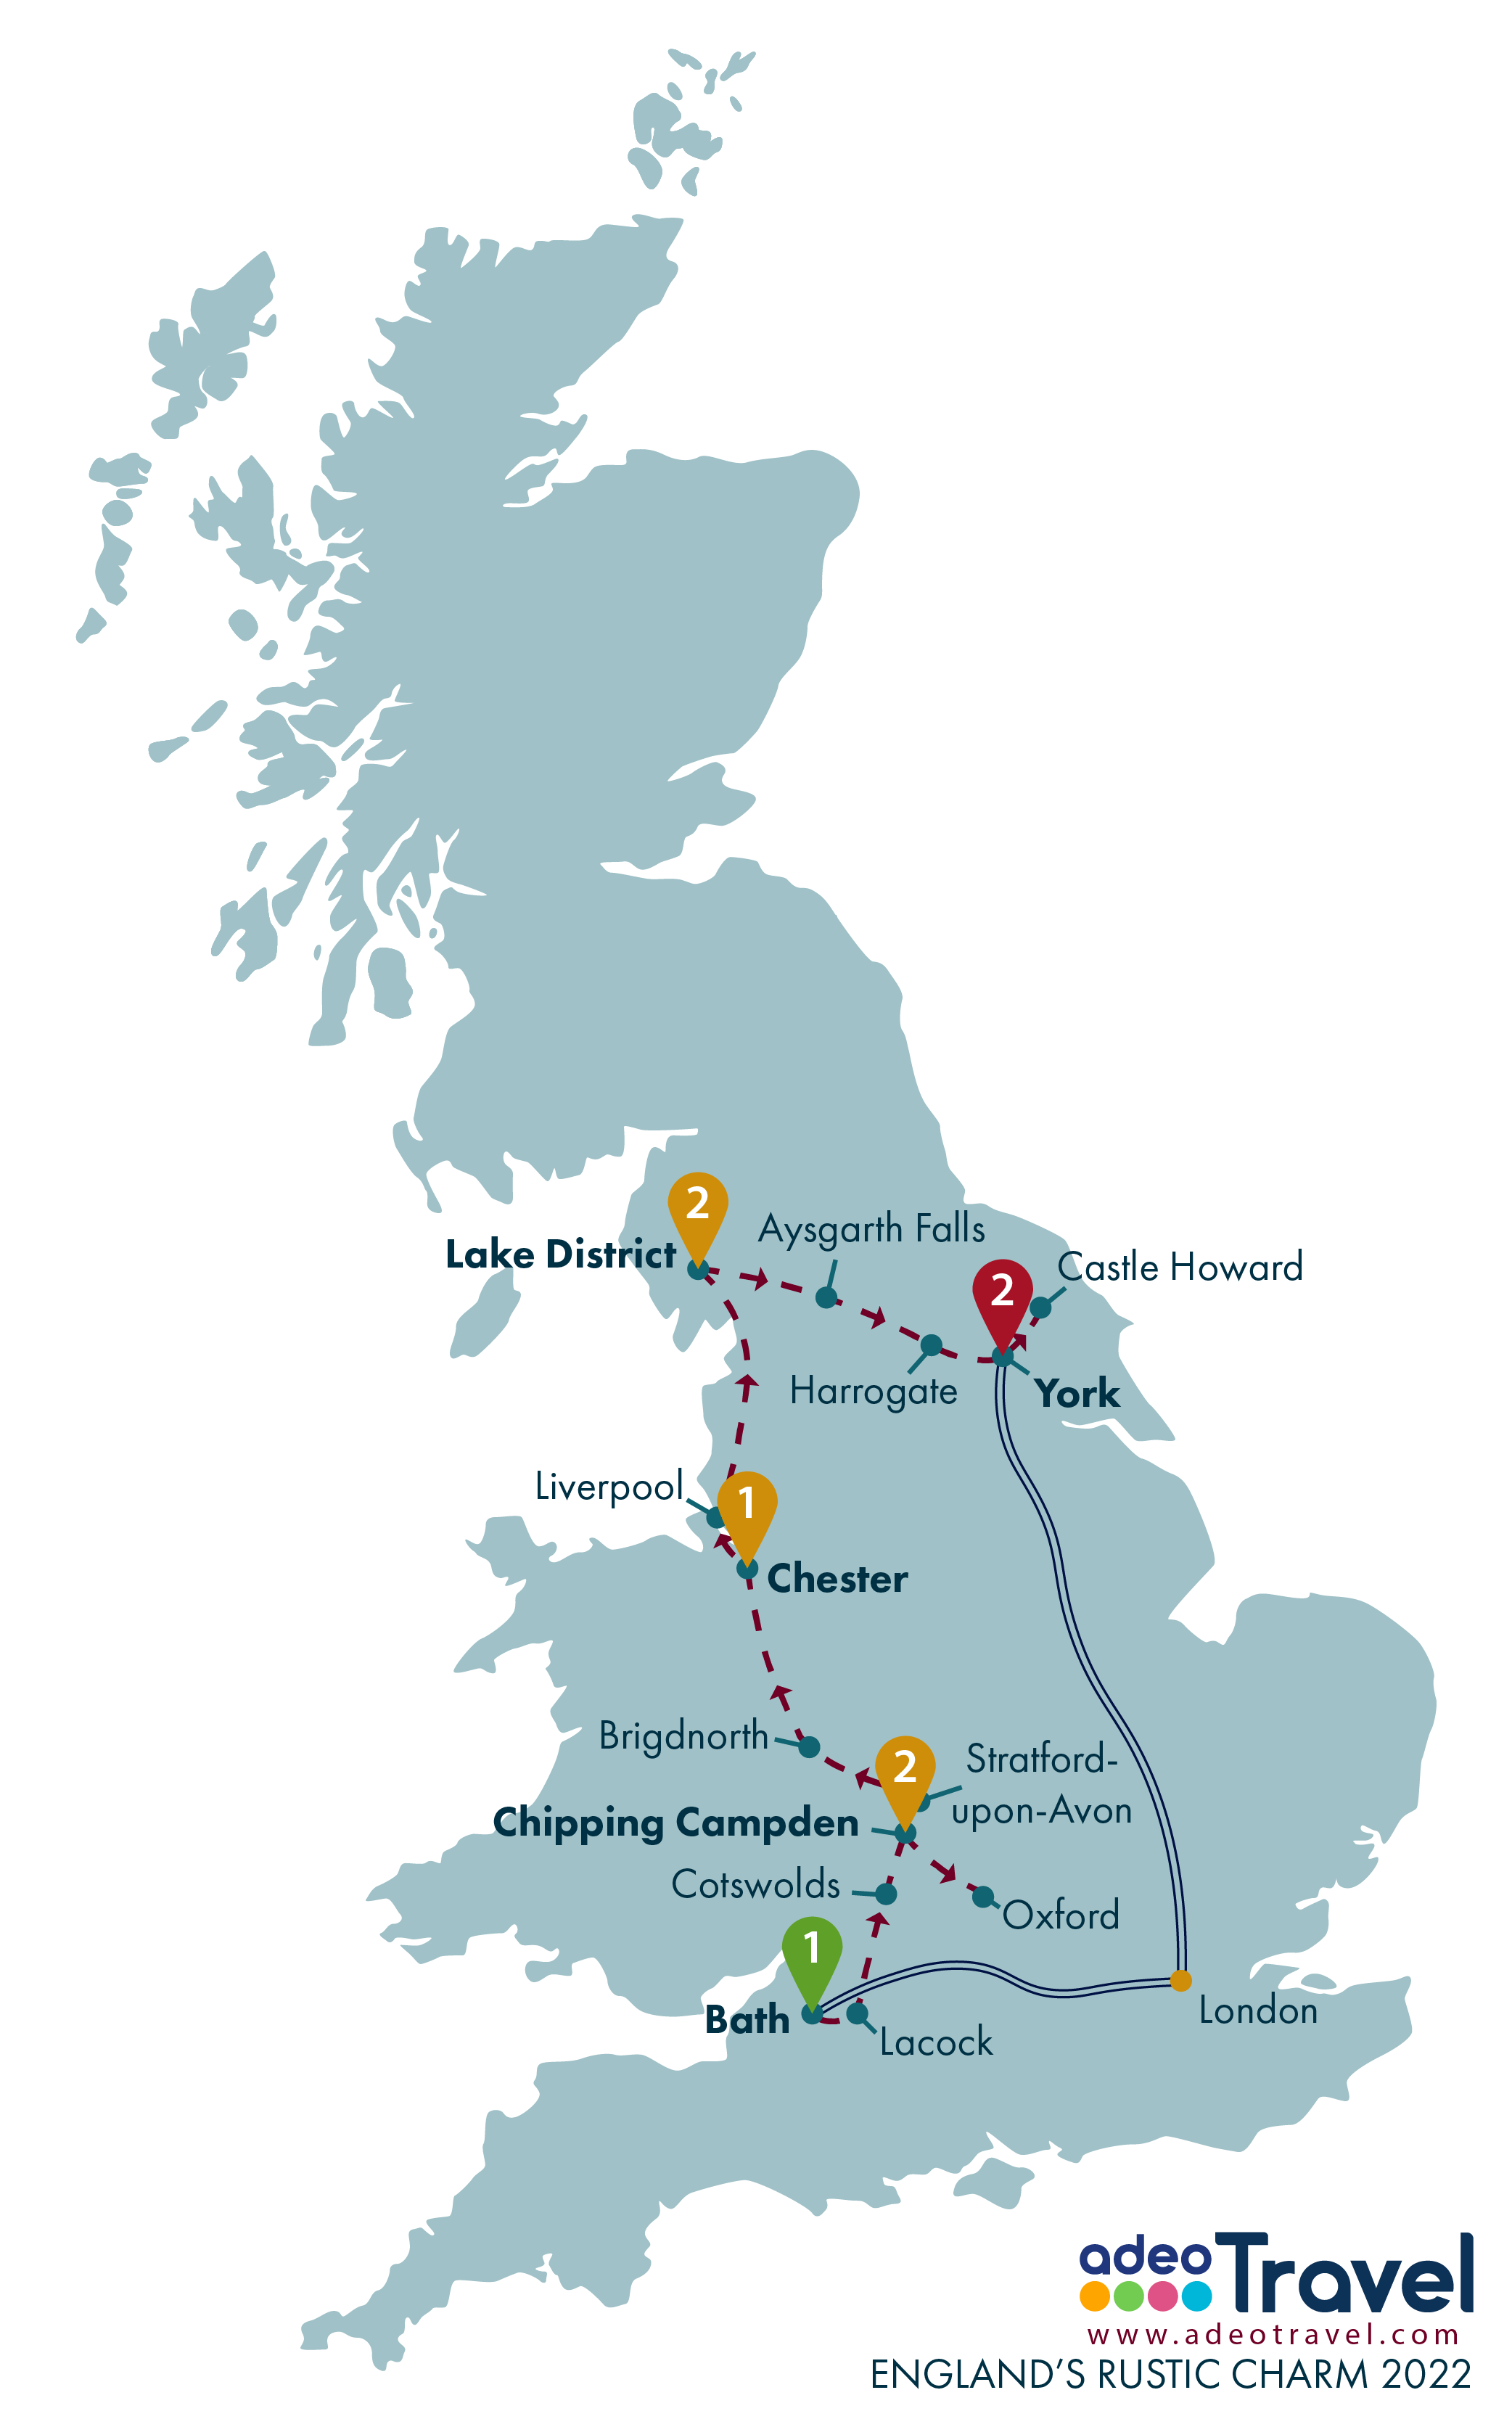 Map - England's Rustic Charm 2022